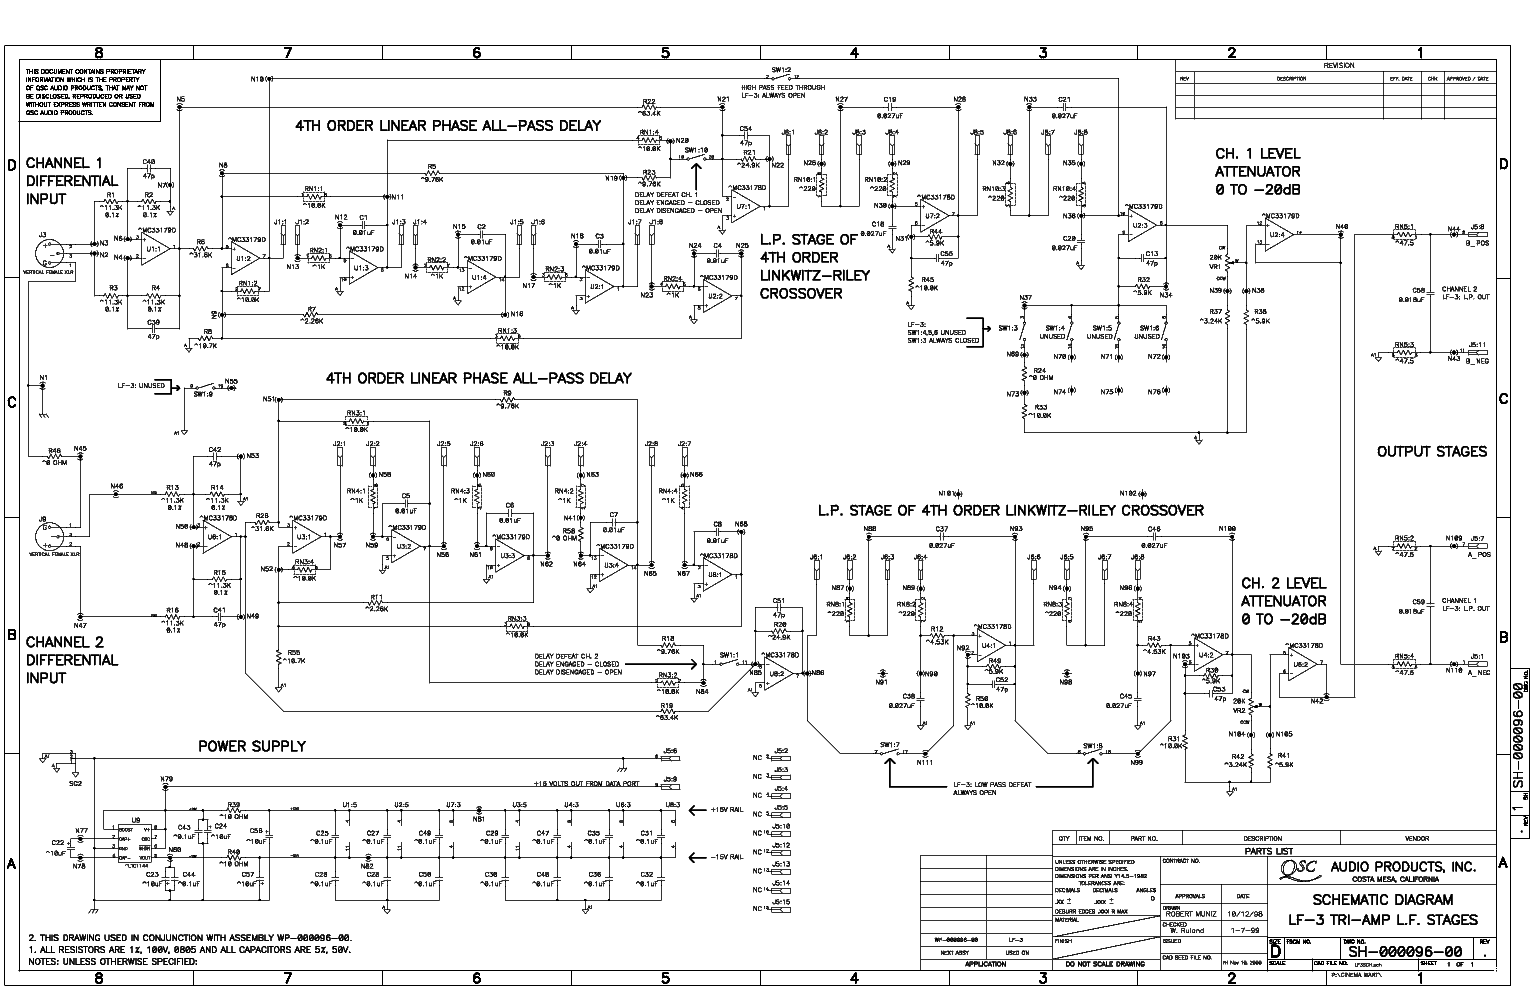 qsc_lf-3_sch.pdf_1 Qsc Plx Schematic Diagram on isa 300ti, pl340 power supply, gx 3 amplifier, k-12 ksub, 1400 power amp, k10 speaker, usa 900 amplifier,